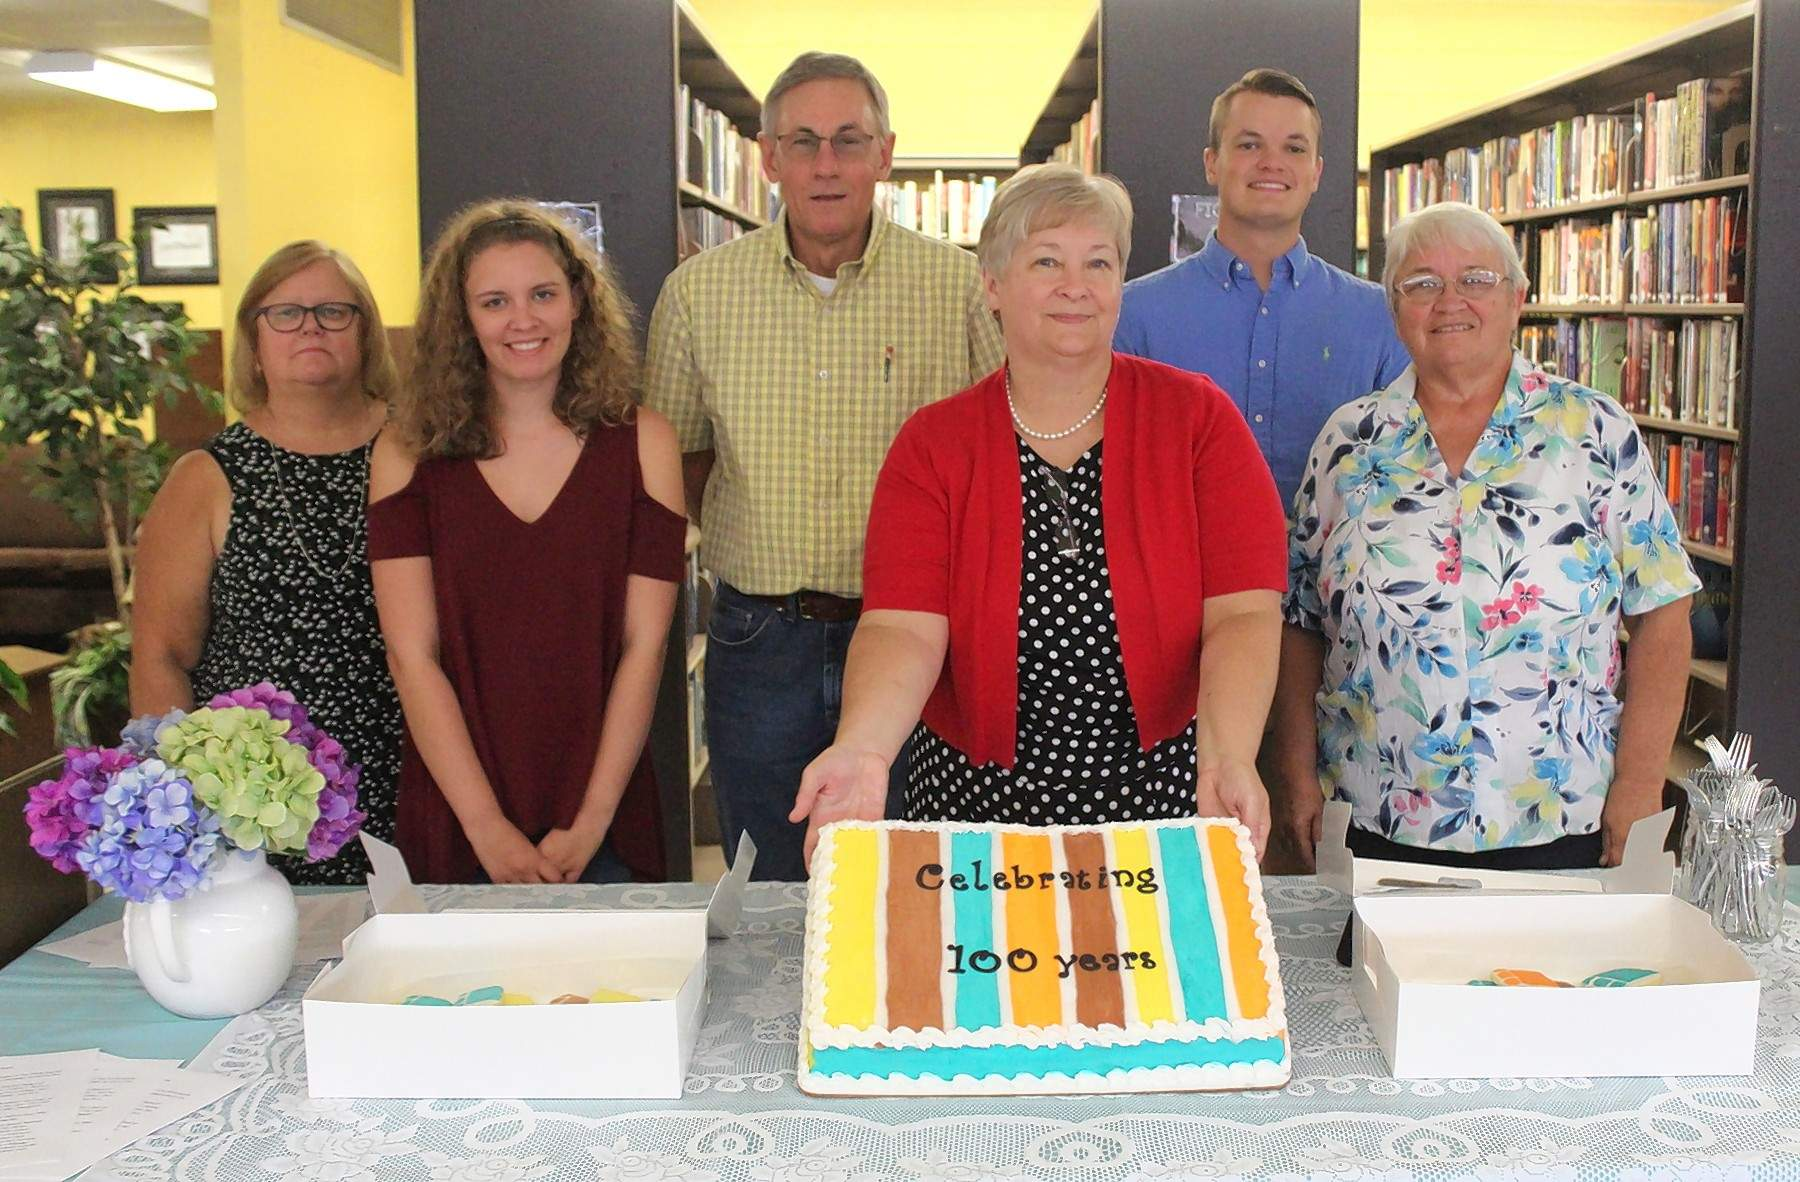 From left, library board member Connie Mathis, assistant Phoebe Issler, board member David Stone, Librarian Kathy West, assistant Lee Wittenauer and board member Charlene Butcher.